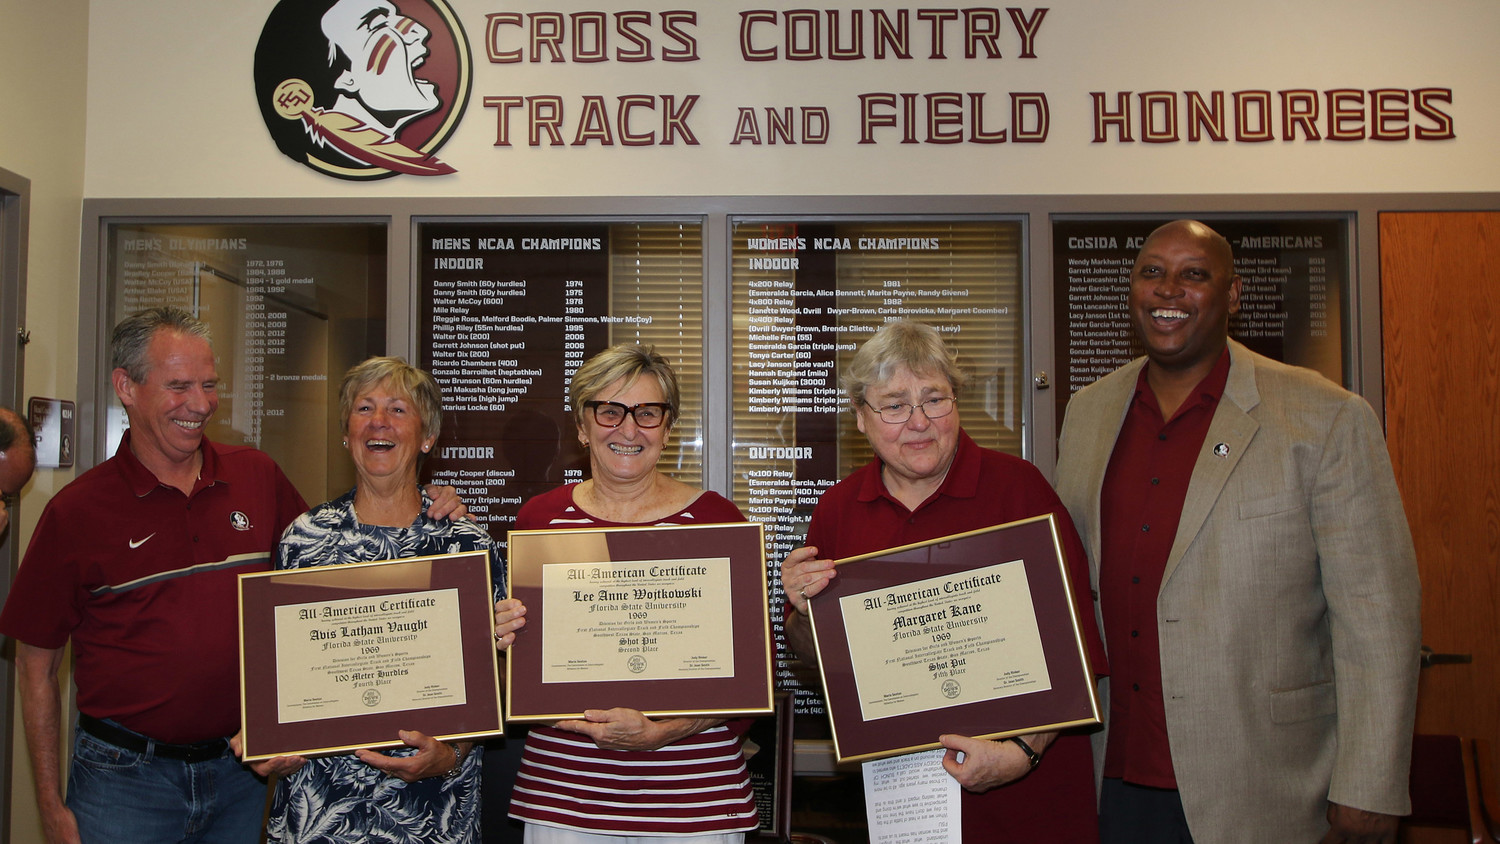 Barrington's Margaret Kane was recently recognized as an All-American track and field athlete at Florida State. Pictured are (from left to right) Florida State track & field coach Bob Braman, Avis Latham Vaught, Lee Anne Wojtkowski, Ms. Kane and FSU Vice President/Director of Athletics Stan Wilcox.